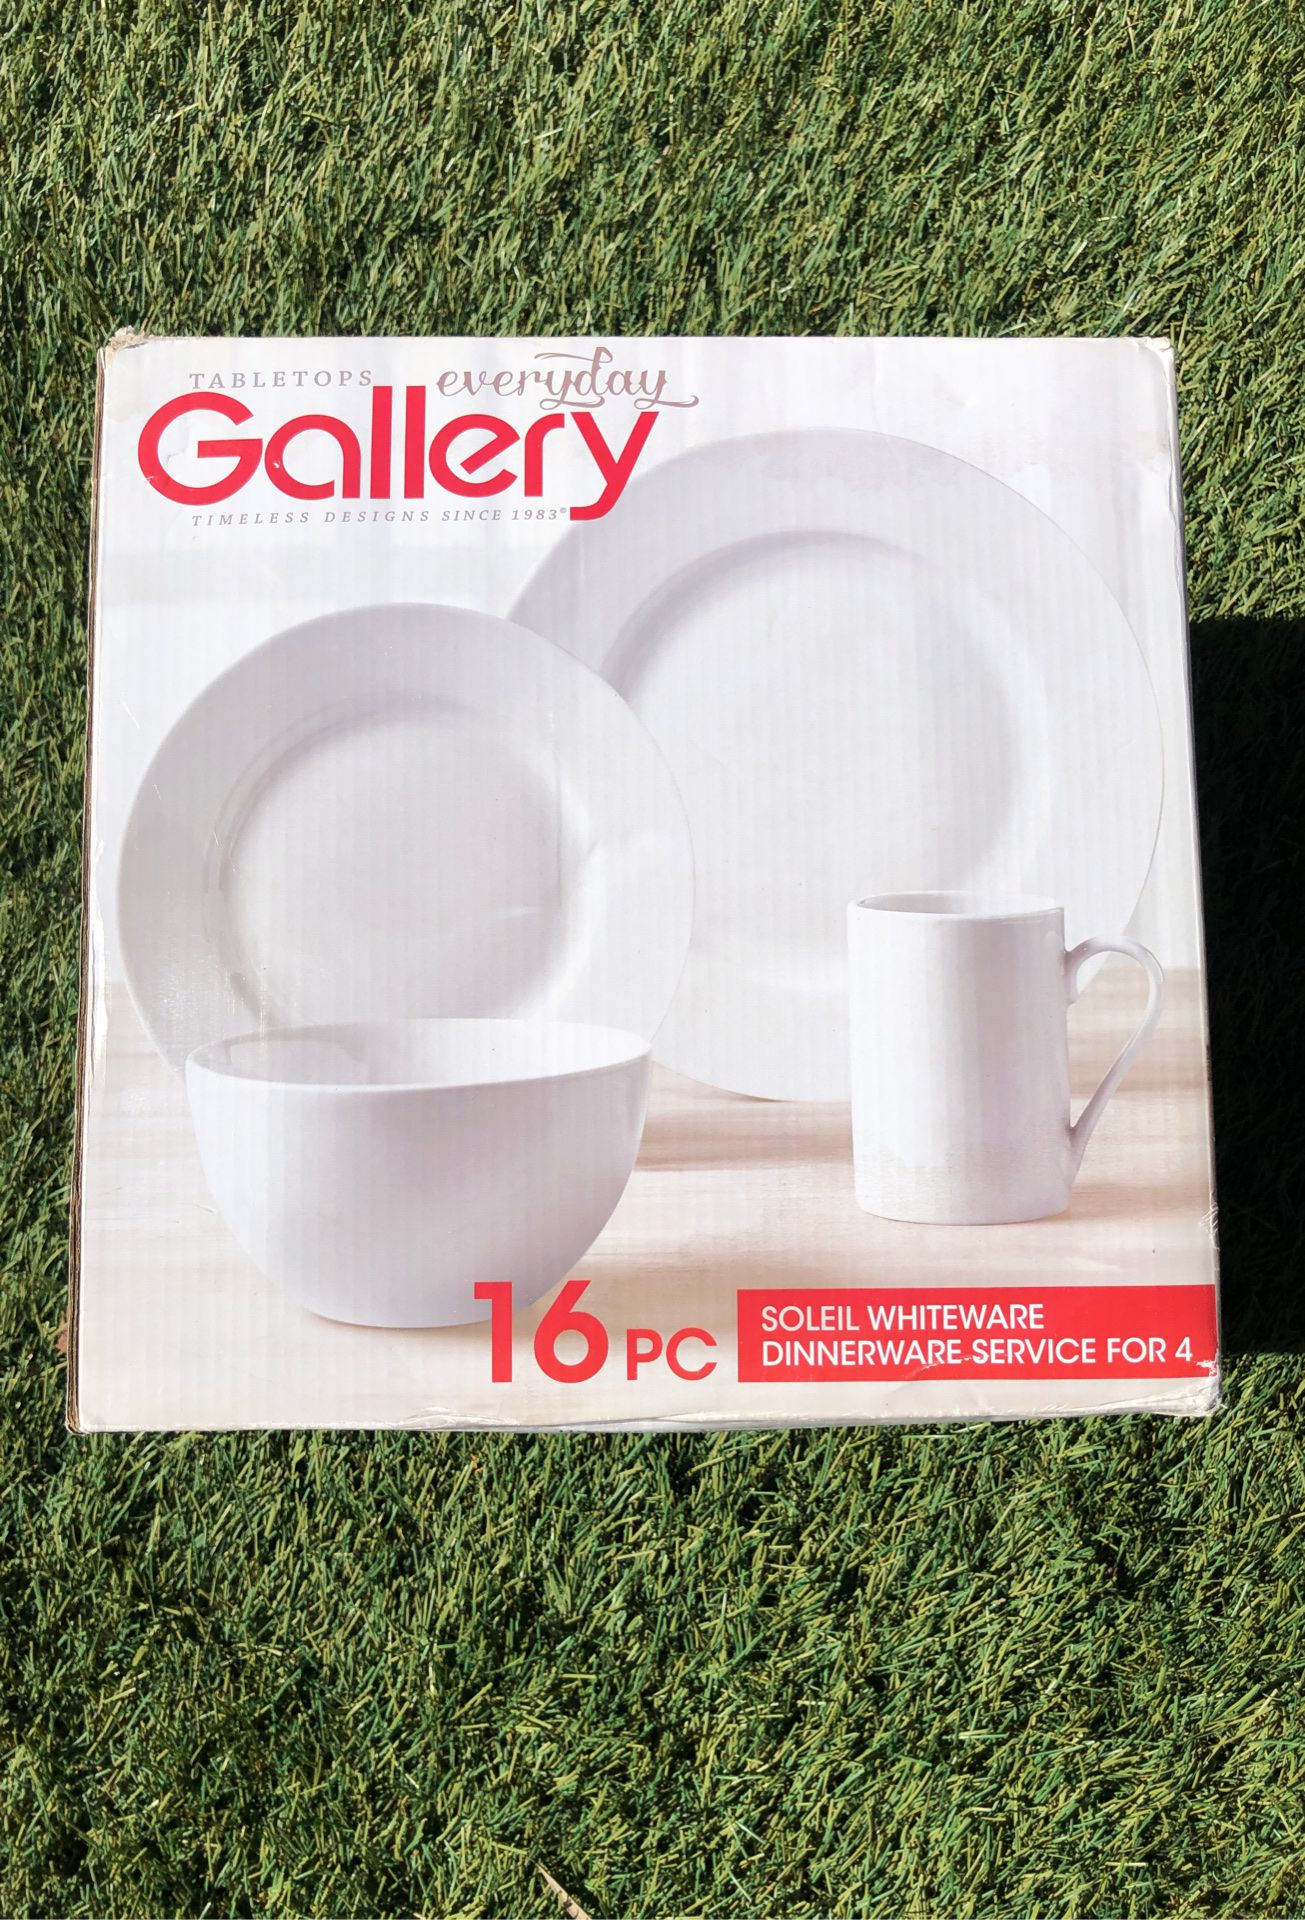 New plates, dishes, bowls and mugs - 16 piece white dinnerware set for 4 - Tabletop everyday gallery